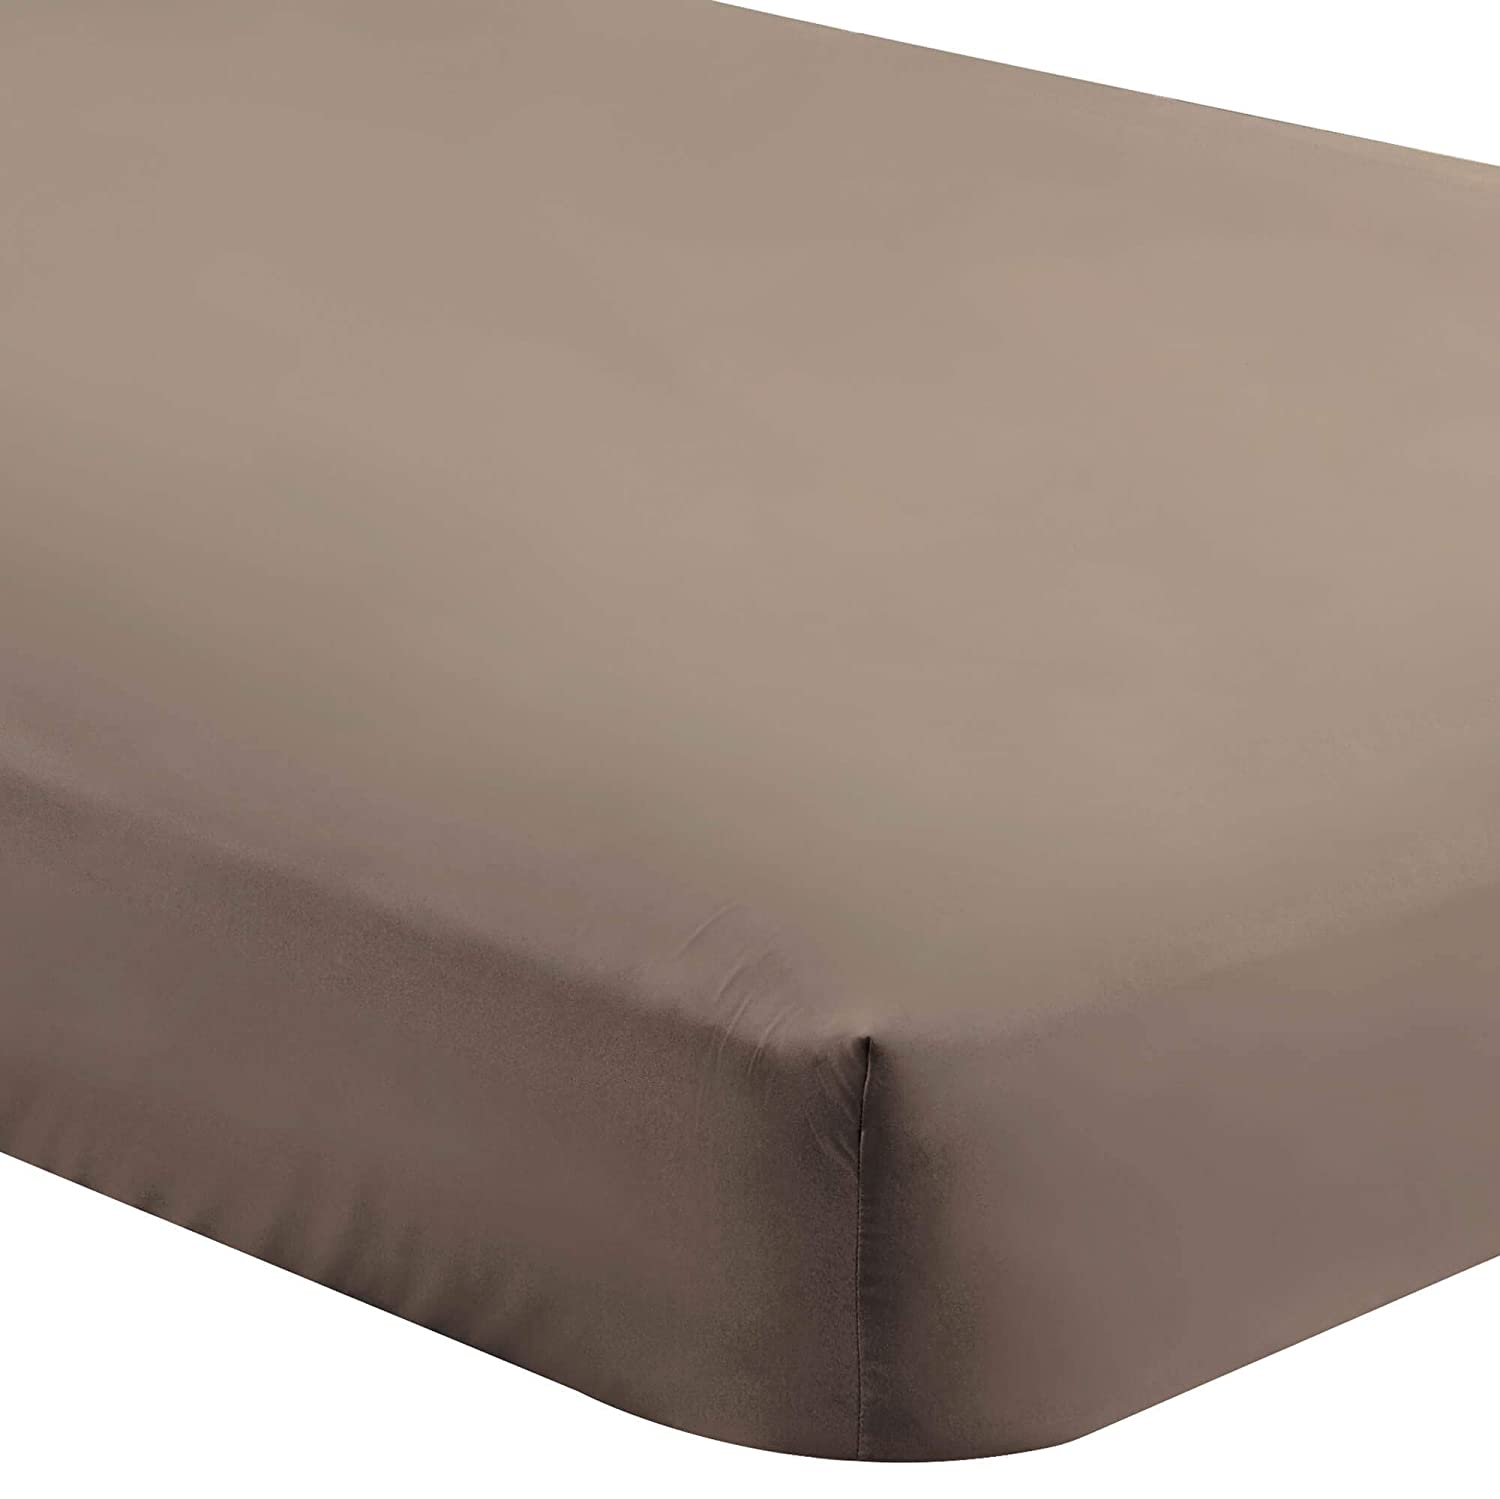 Bare Home Fitted Bottom Sheet Queen - Premium 1800 Ultra-Soft Wrinkle Resistant Microfiber - Hypoallergenic - Deep Pocket (Queen, Taupe)